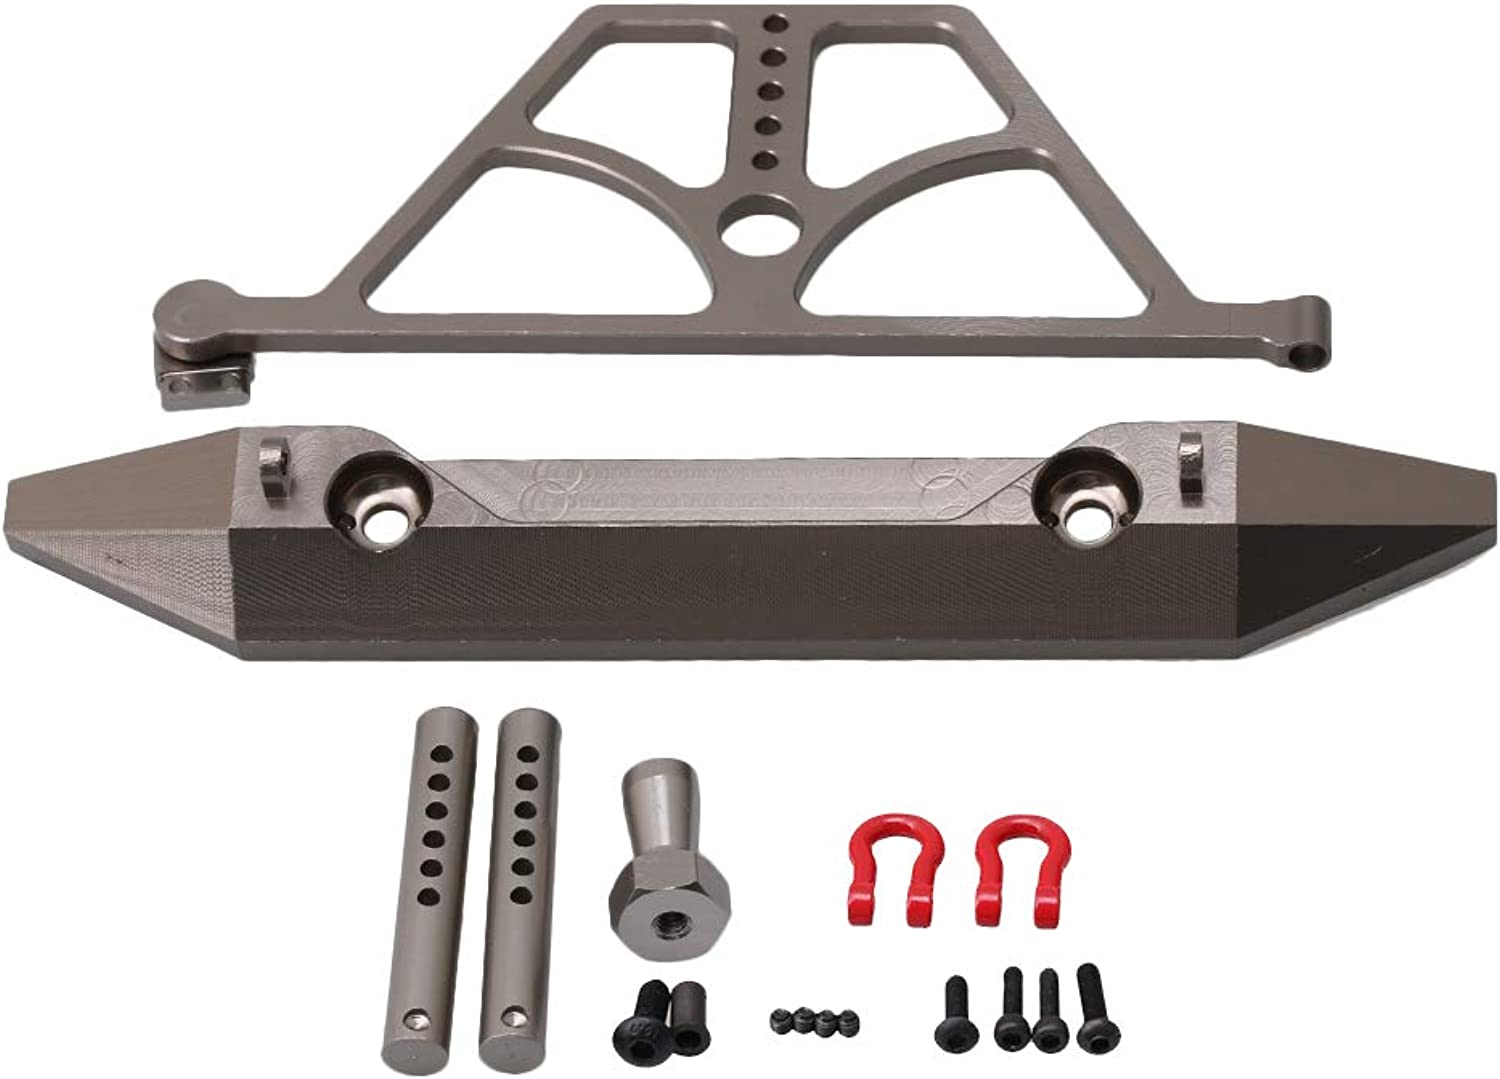 BQLZR Aluminum Alloy SCX0039 Rear Bumper & Rear Shock Tower Anti-Collision Predection Kit RC1 10 for AXIAL SCX10 Electric 4WD